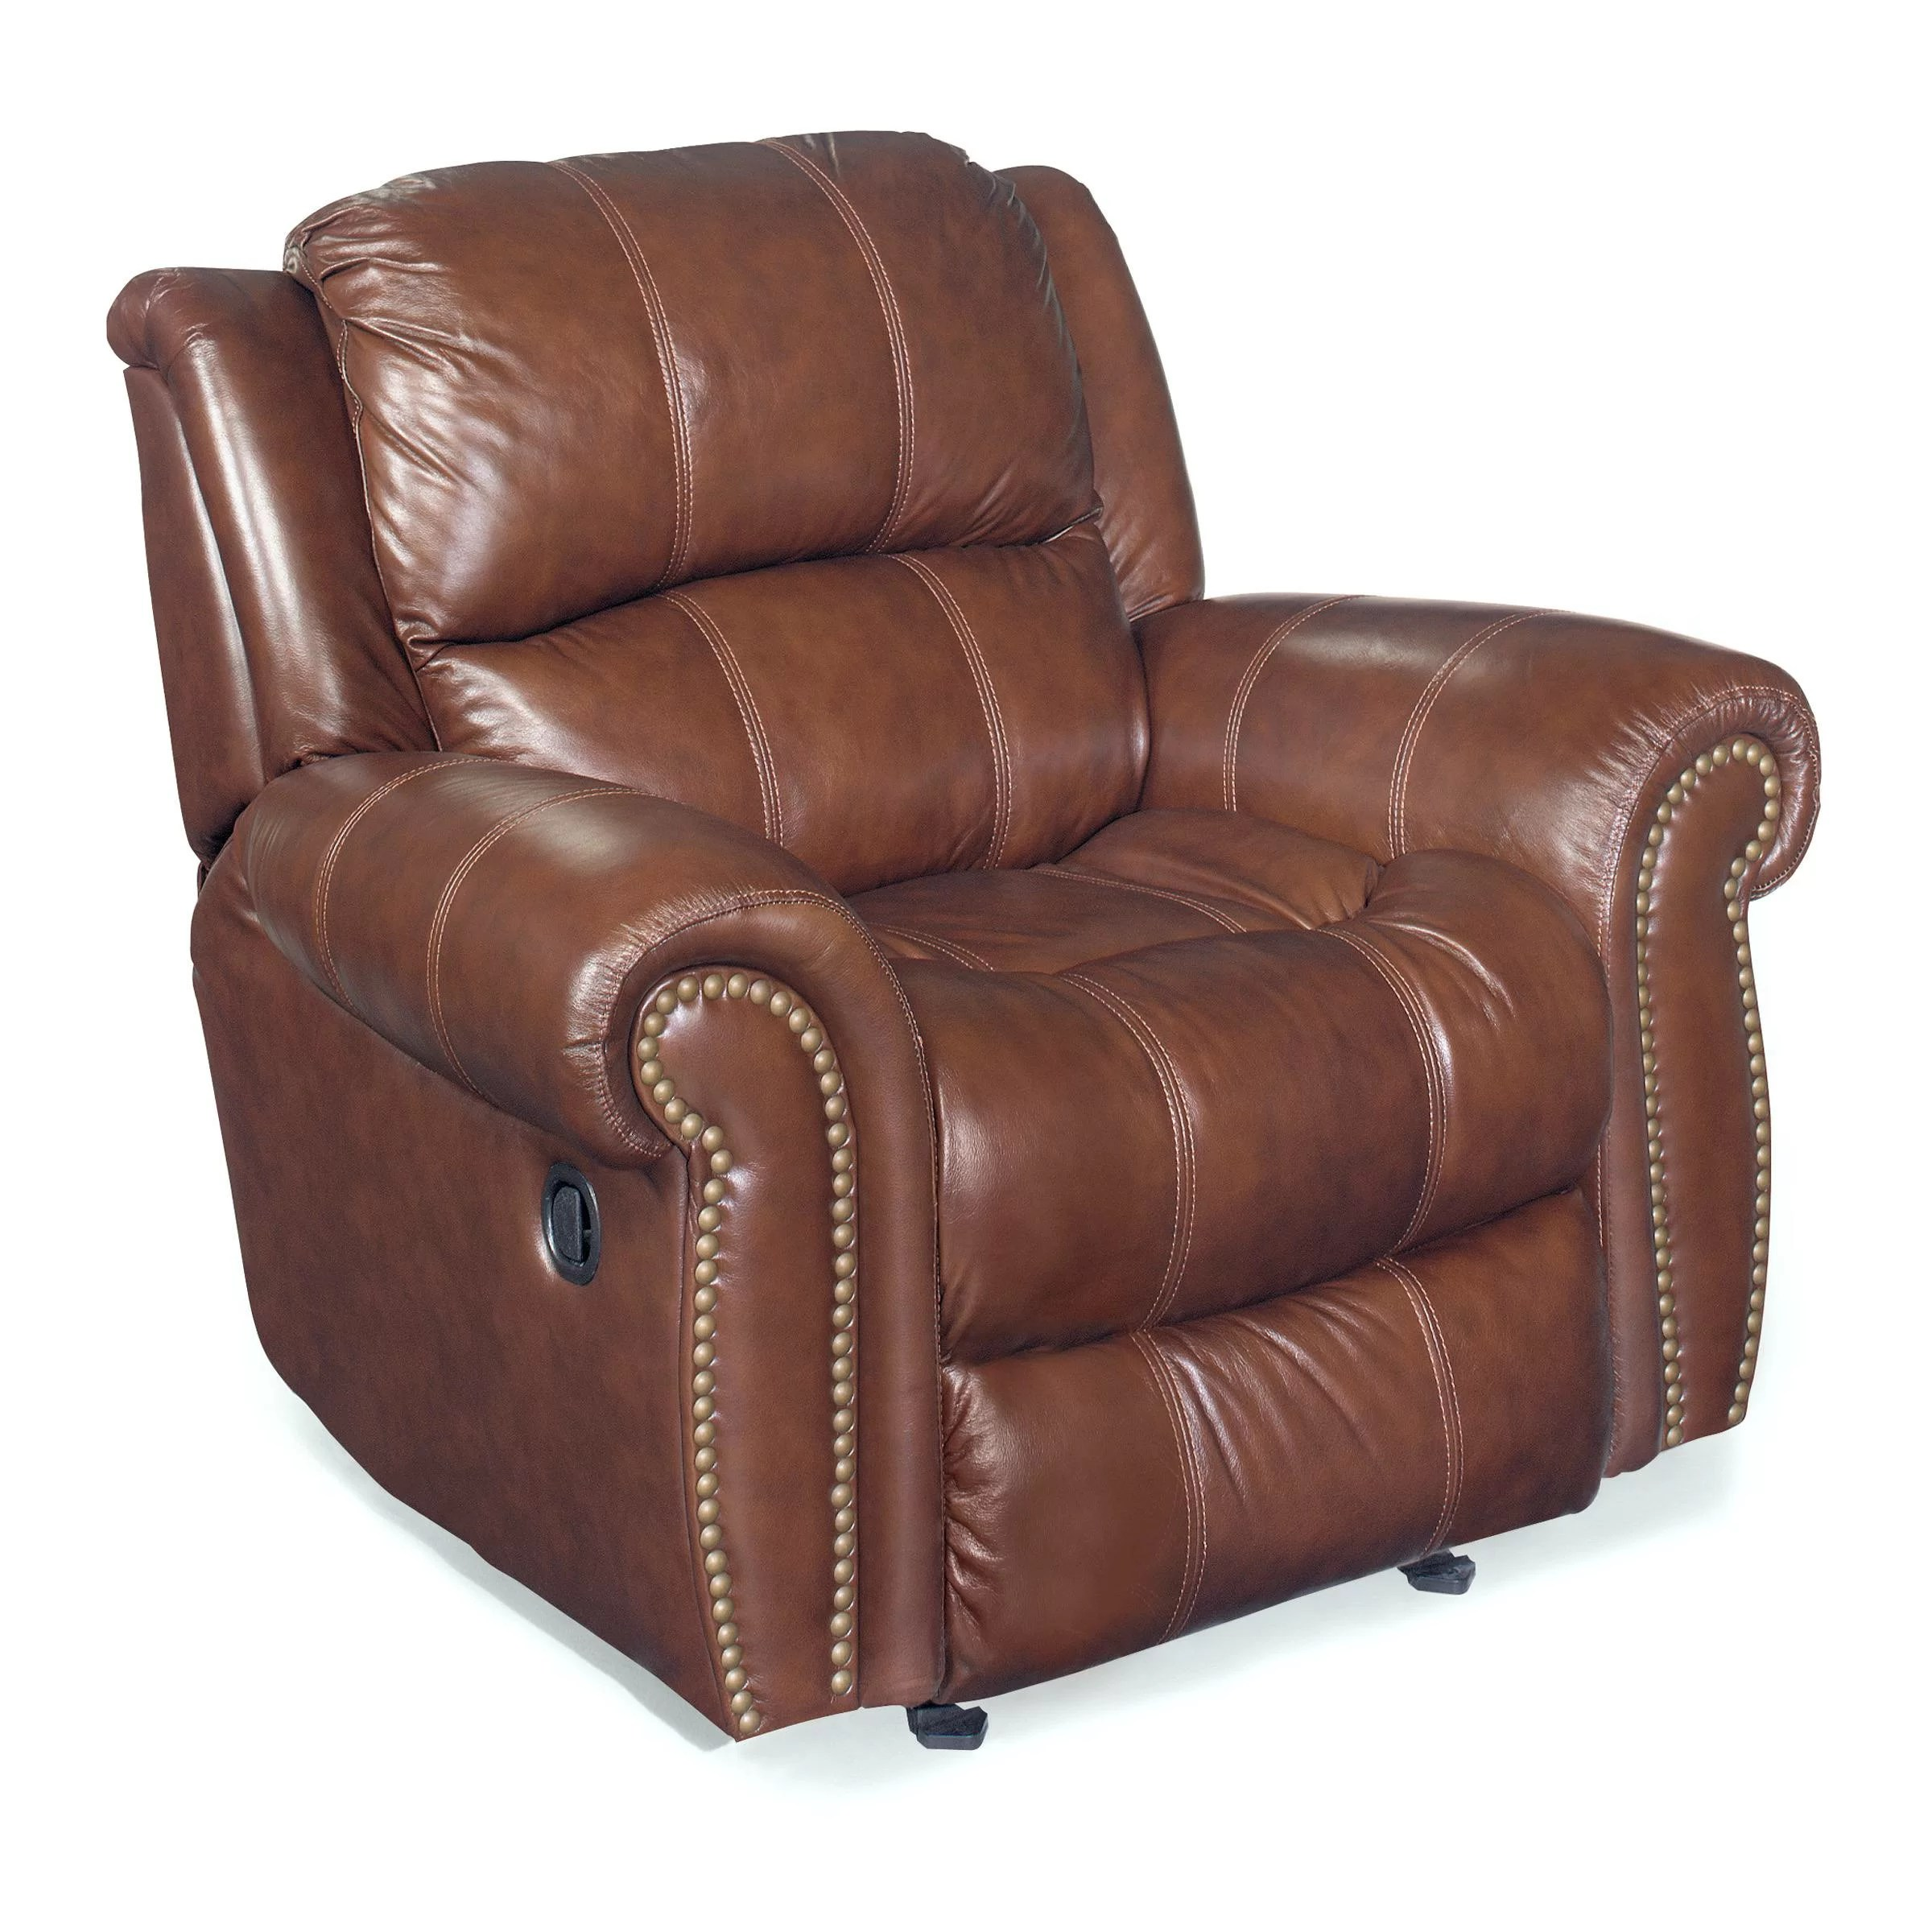 Hooker Furniture Glider Leather Recliner Chair & Reviews